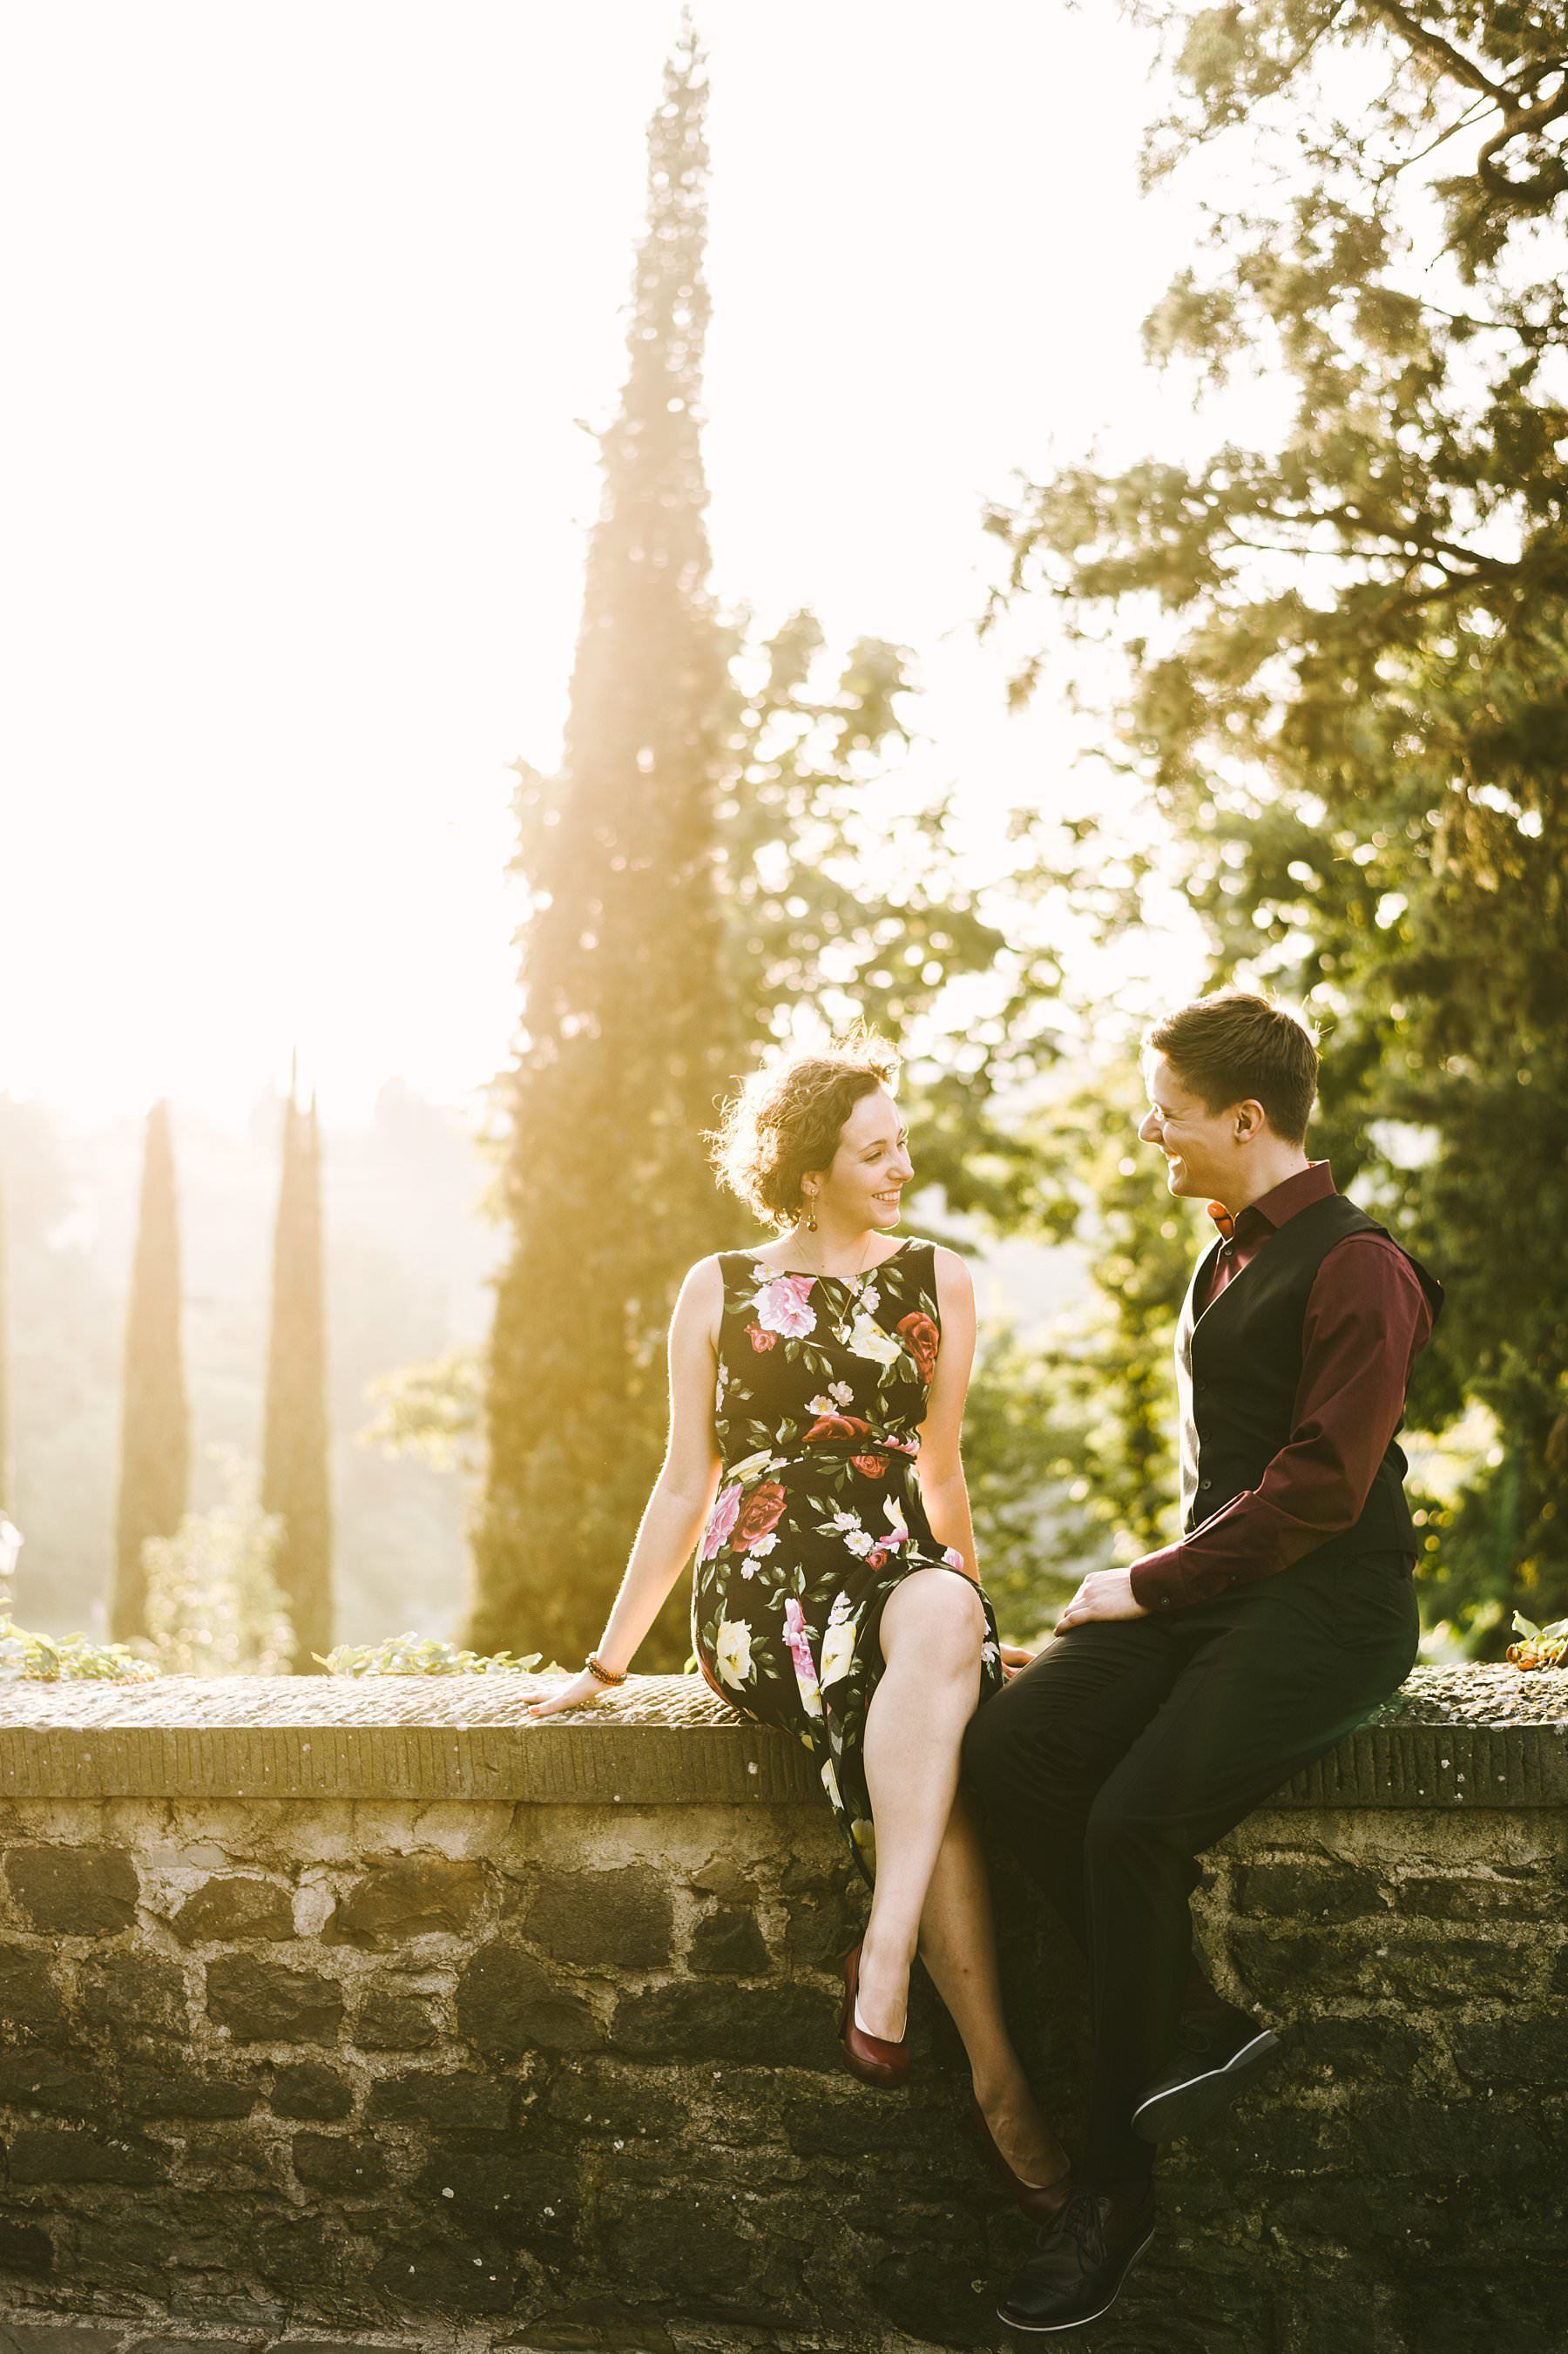 Isabel and Matthew's lovely photos at sunset. Engagement pictures are usually romantic, but they do their best work when they turn out to be also fun and creative. Take those photos at sunset in a charming city like Florence and you will reach perfection. She's from Spain, he's from the United States. They live in London together and they decided to have a holiday in Florence as a celebration for their recent engagement. This gives you an idea of how cool this couple is, and their photos at sunset will do the rest.